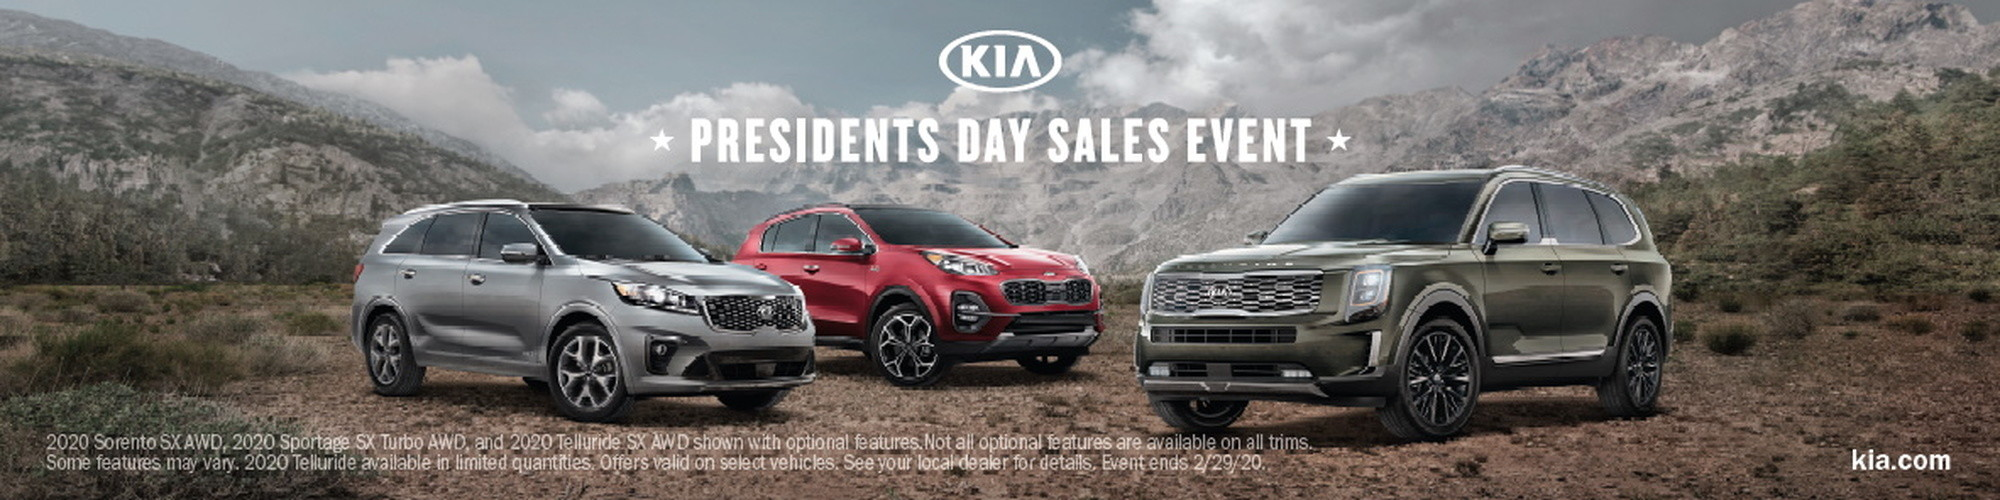 2020 Kia Presidents Day Car Sales Event